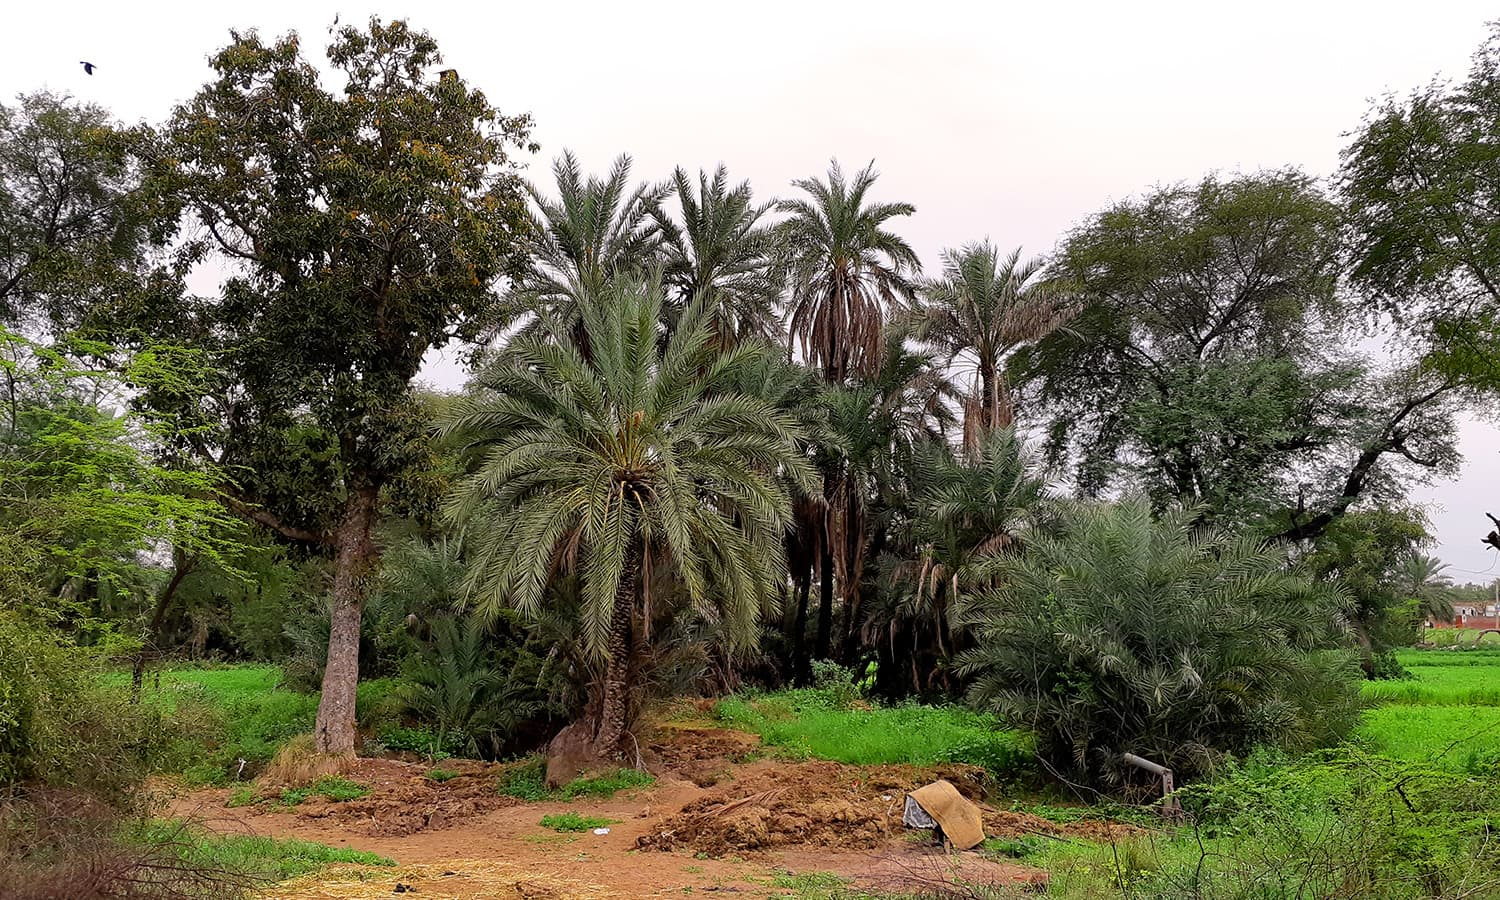 The palm grove and the well at Marhi of Bhera.